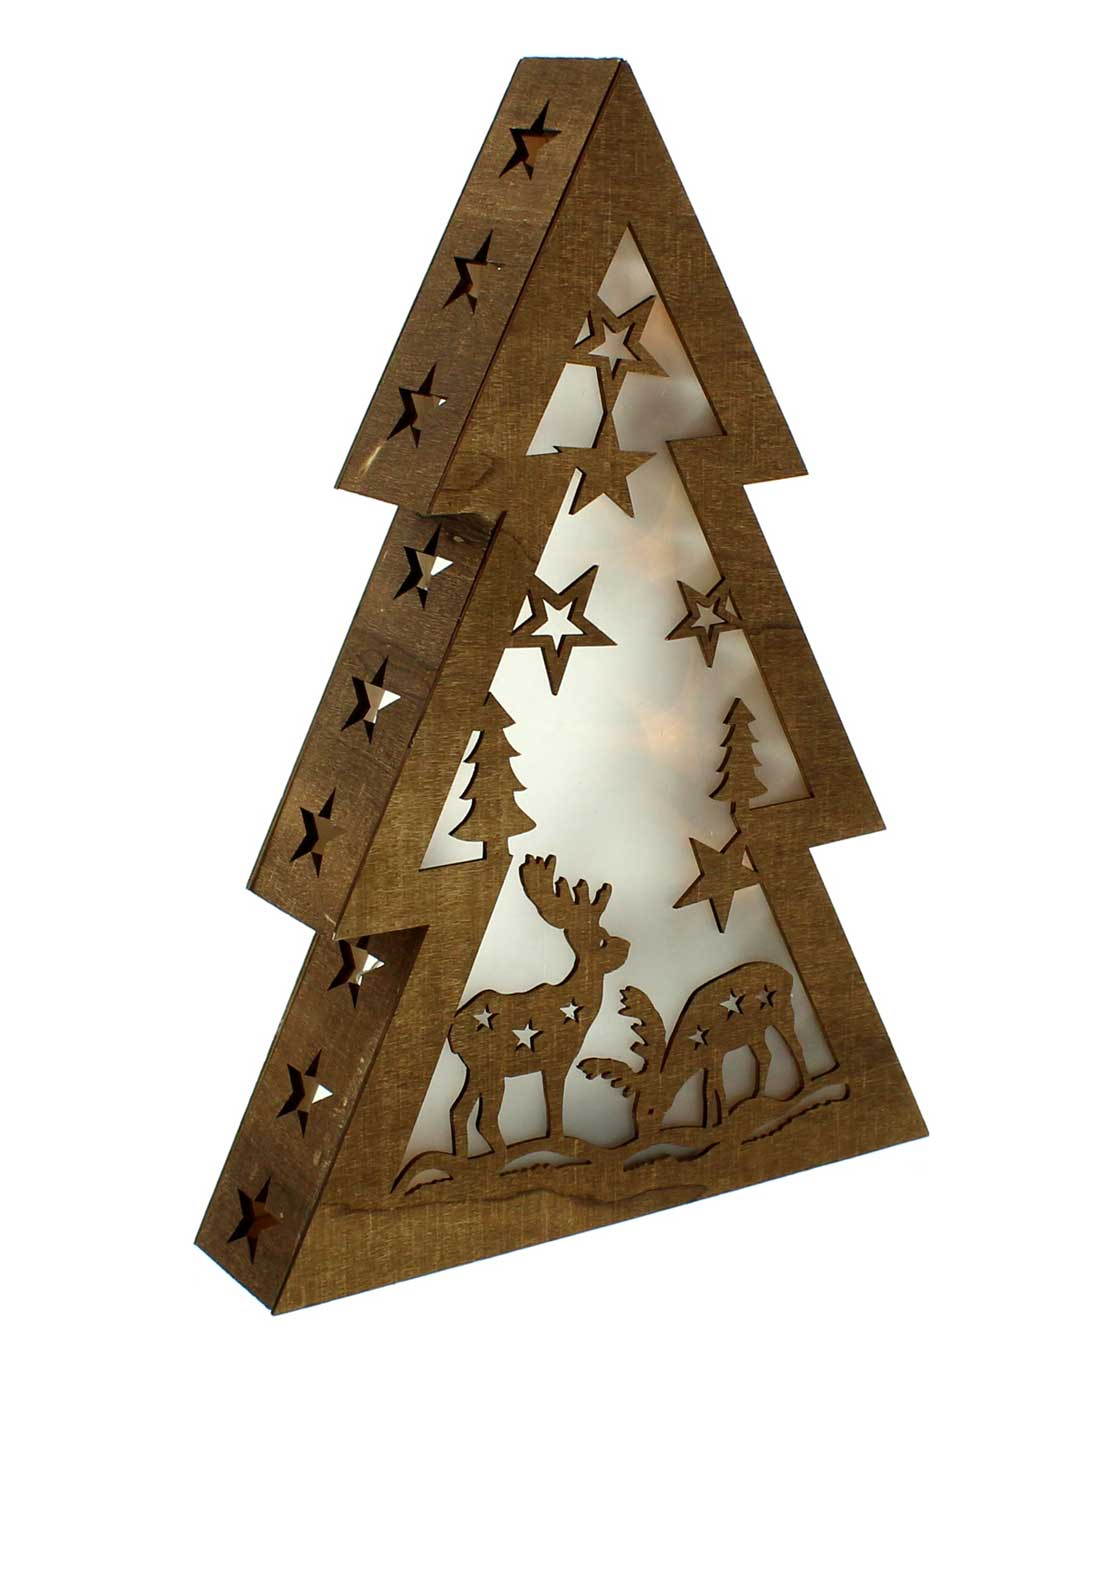 Festive Light Up Christmas Tree Decoration, 37cm